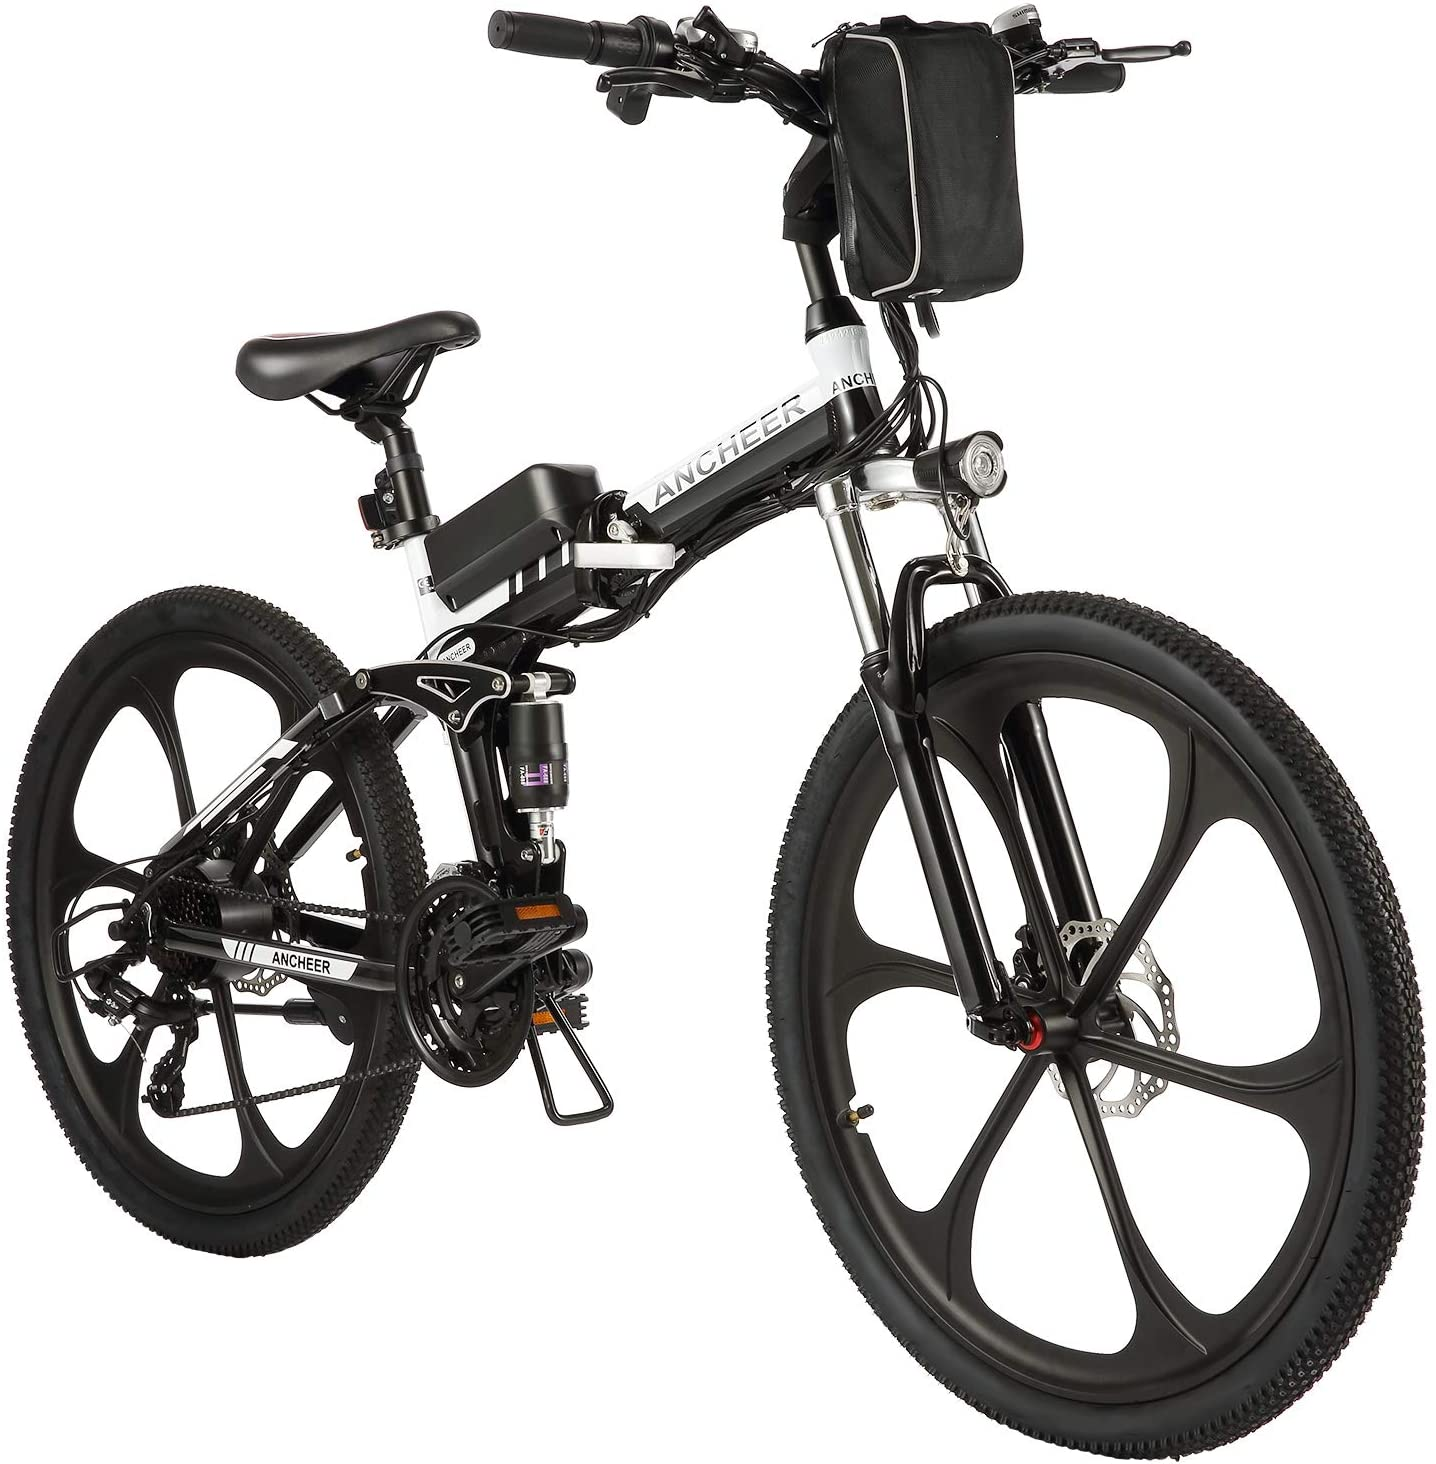 Best 10 Folding Mountain Bikes of [year] Reviews & Guide 5